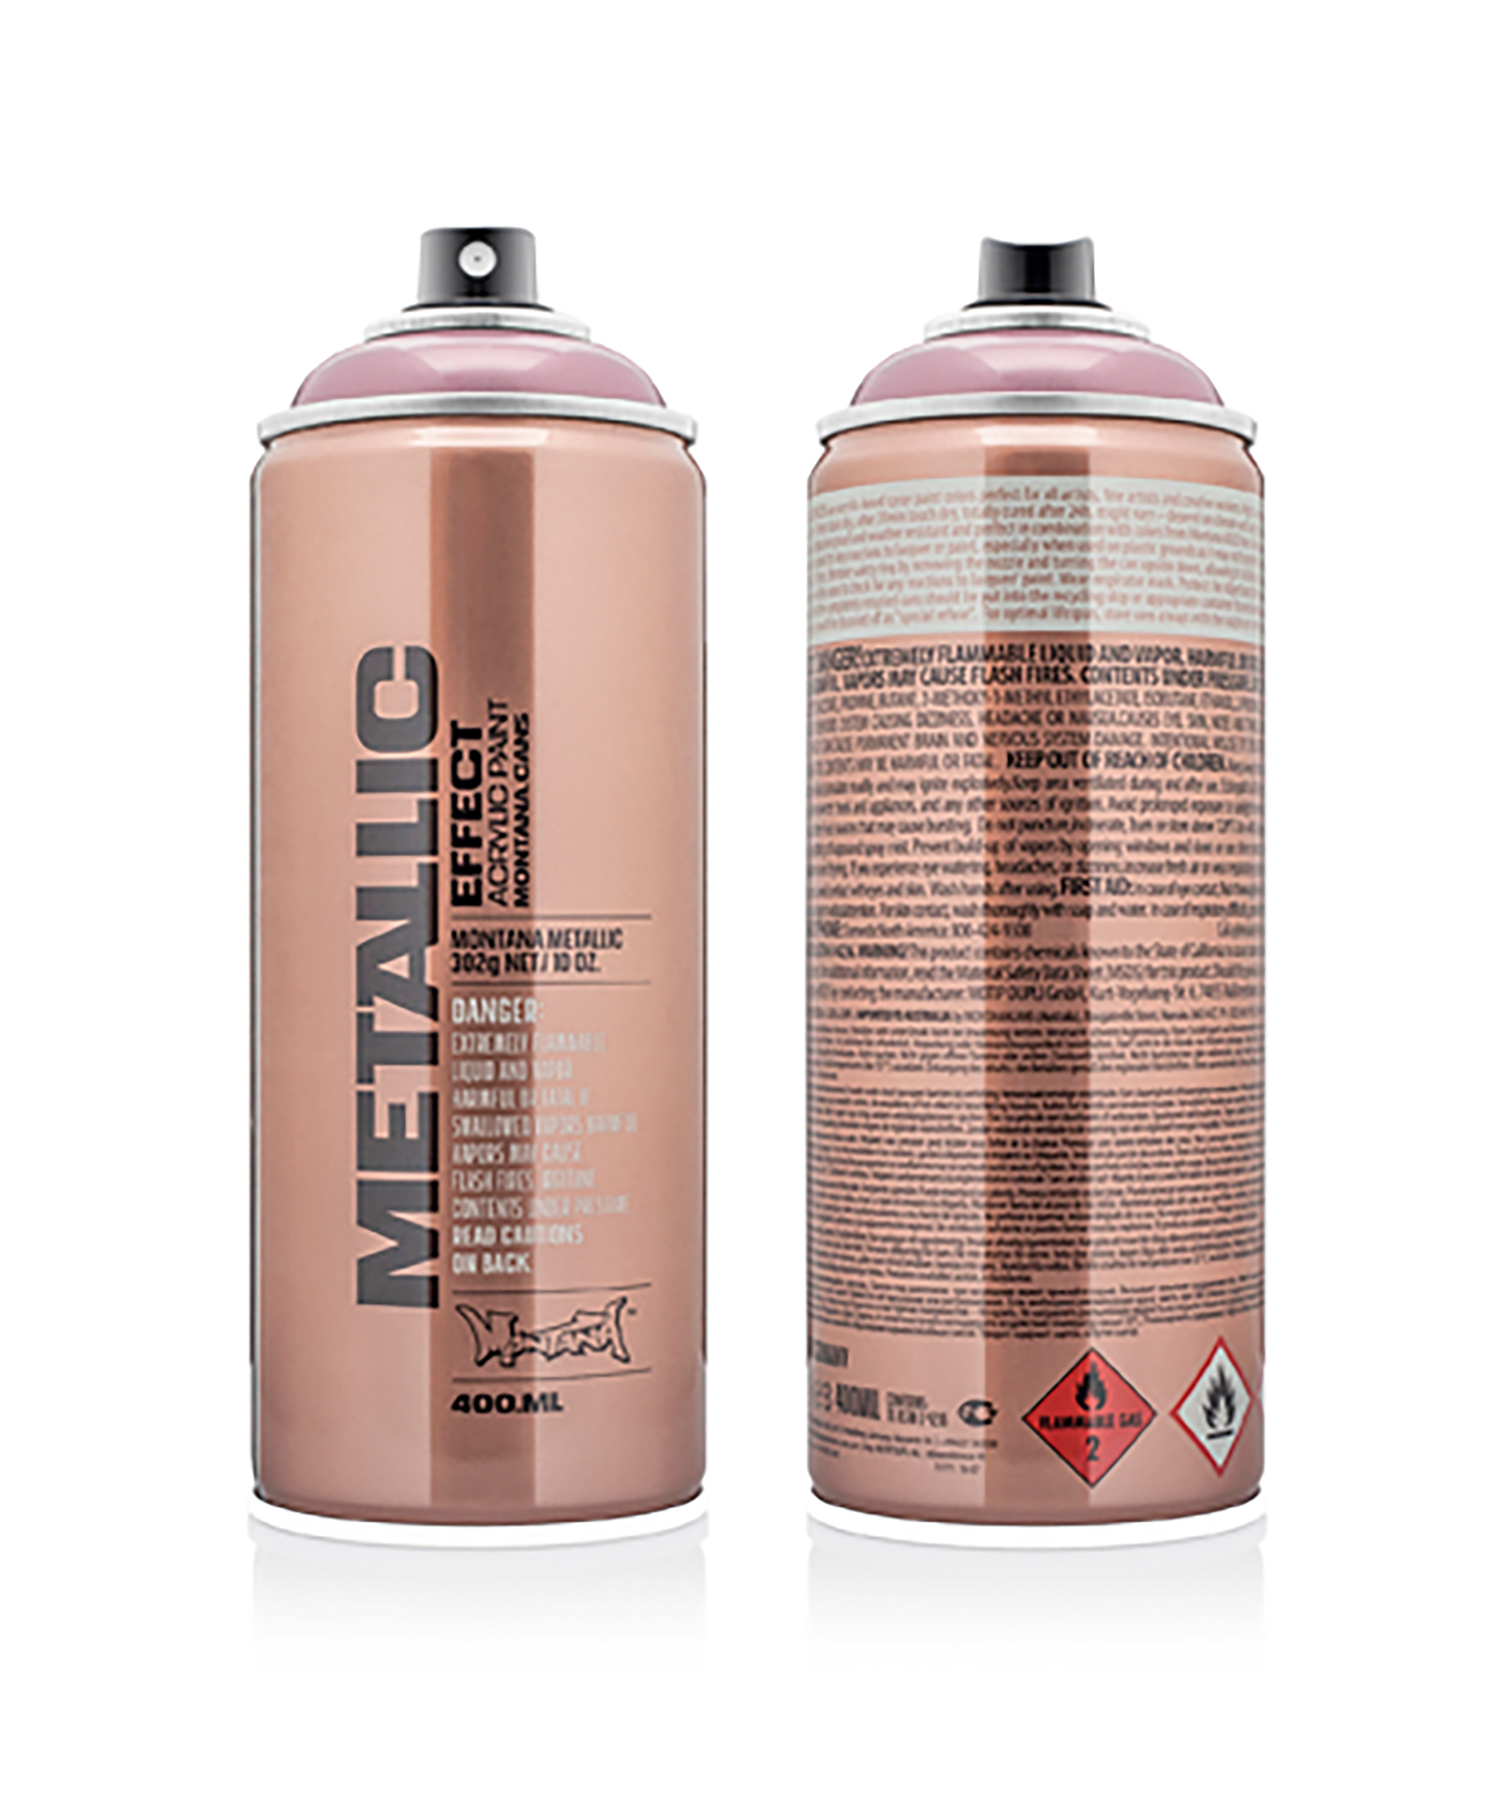 MONTANA-EFFECT-METALLIC-SPRAY-400ML_EMC3110